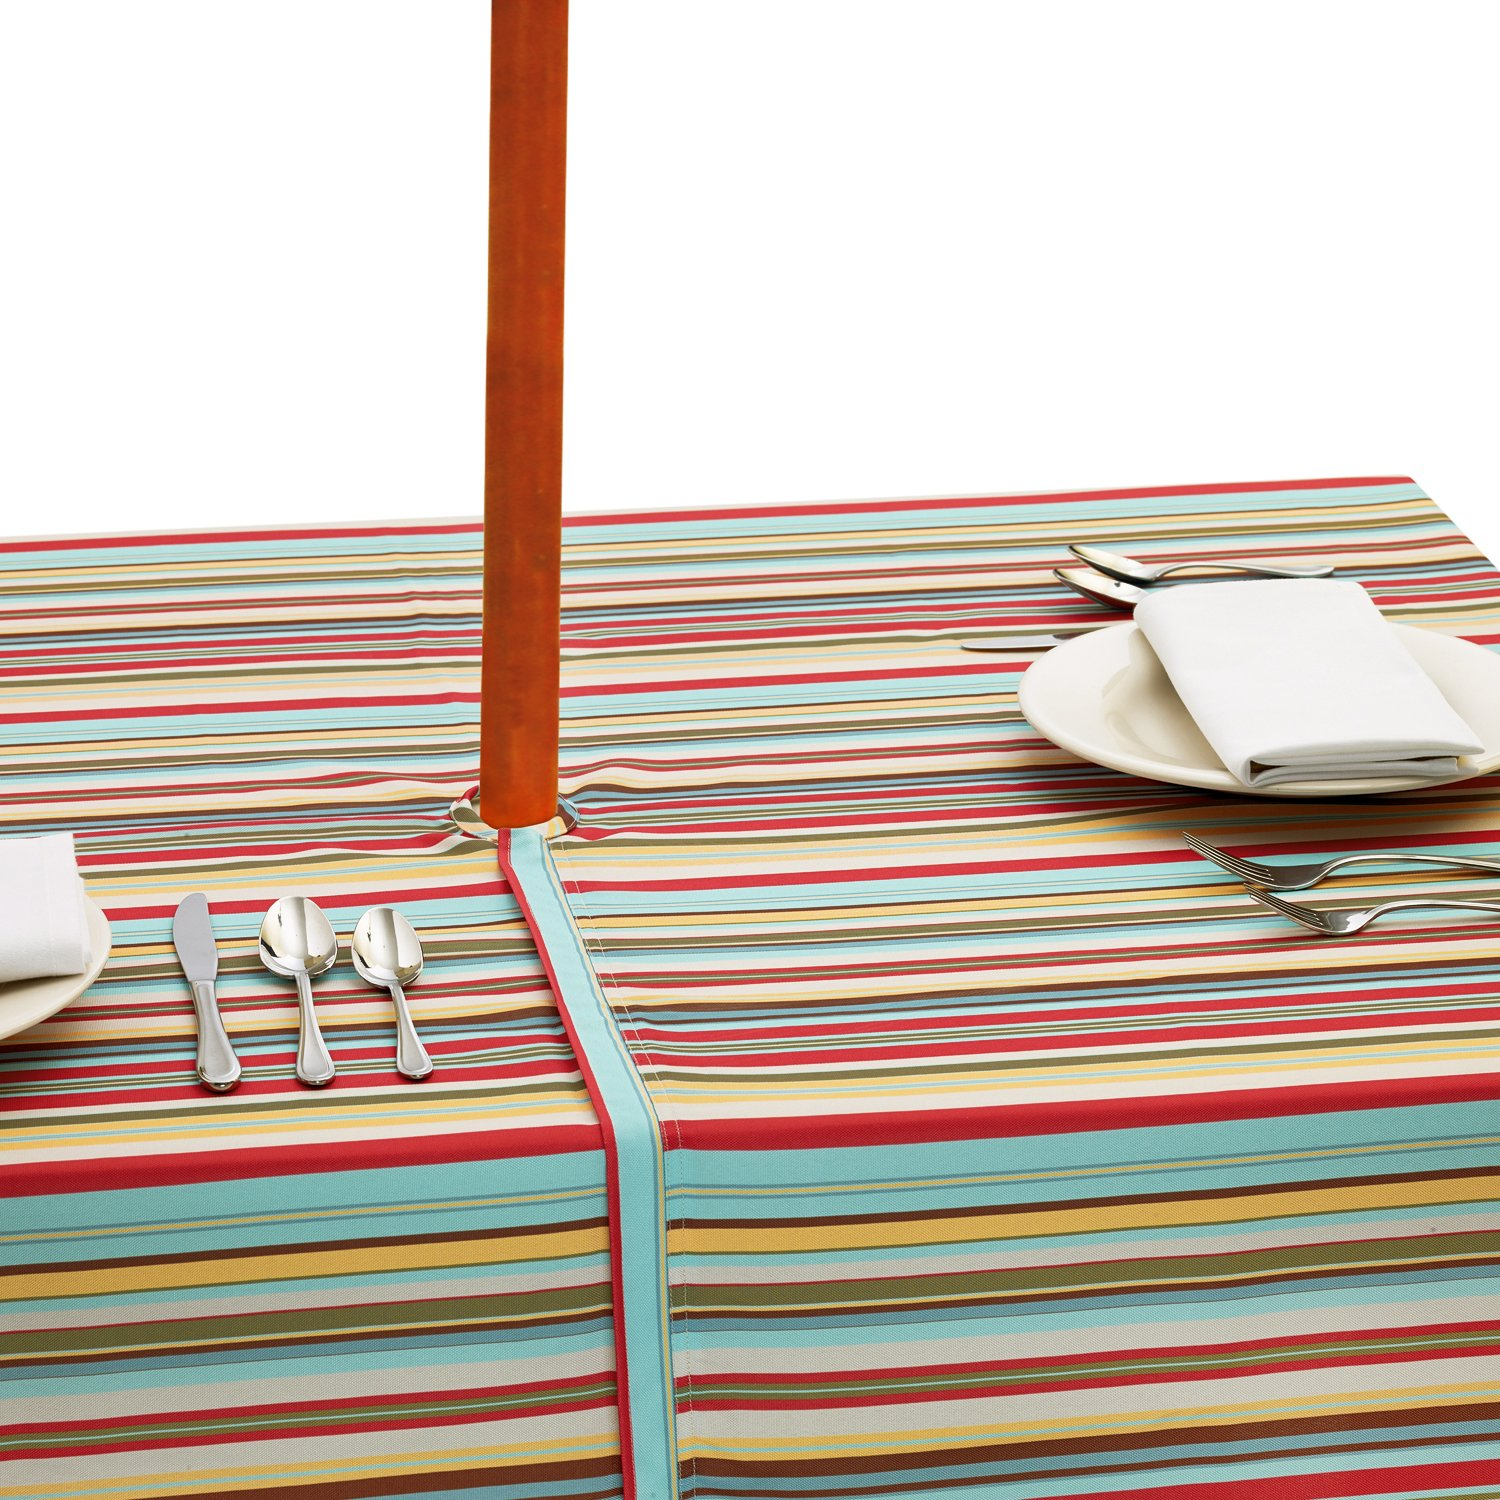 DII Spring & Summer Outdoor Tablecloth, Spill Proof and Waterproof with Zipper and Umbrella Hole, Host Backyard Parties, BBQs, & Family Gatherings - (60x84'' - Seats 6 to 8) Warm Summer Stripe by DII (Image #7)